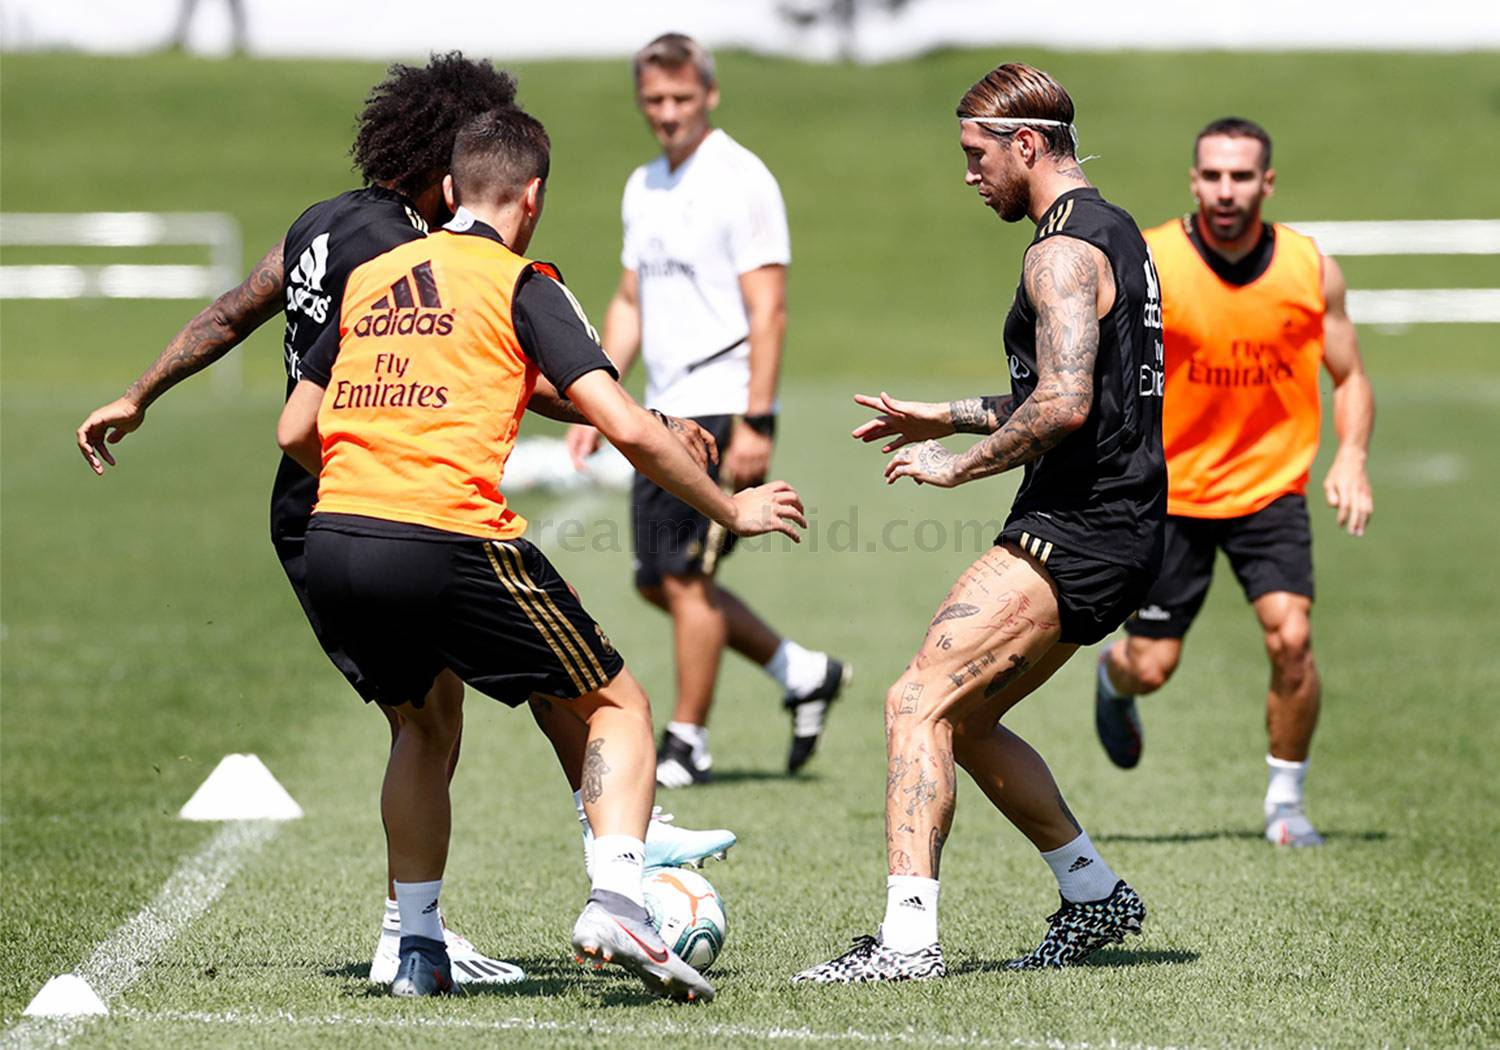 Real Madrid - Entrenamiento del Real Madrid en Montreal - 13-07-2019